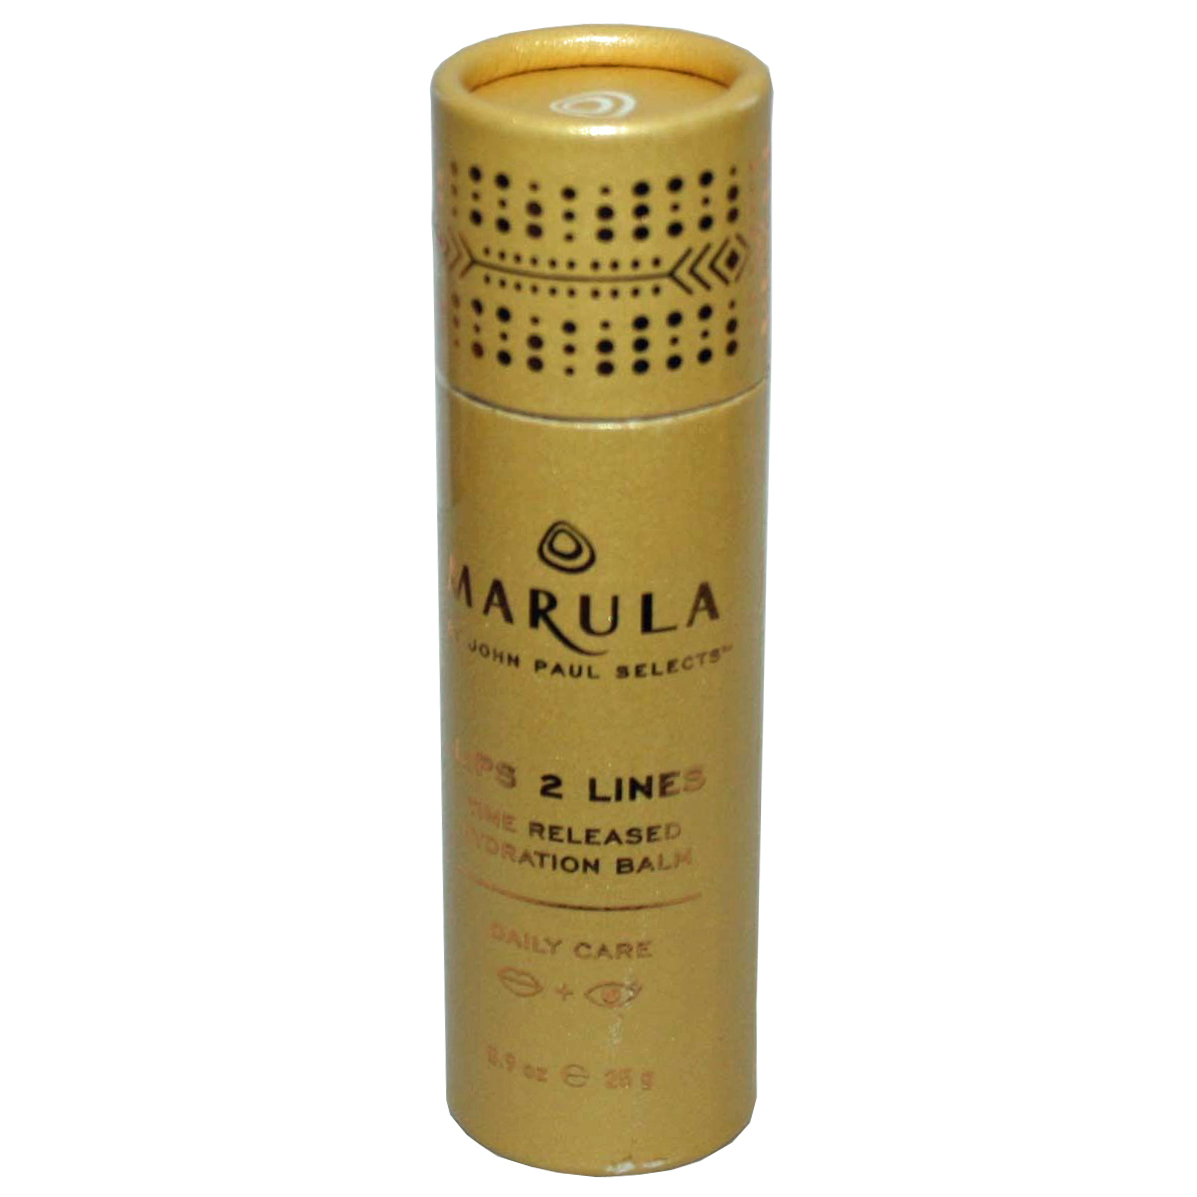 Marula By John Paul Selects Lips & Lines Time Released Hydration Balm 0.9 oz 13265